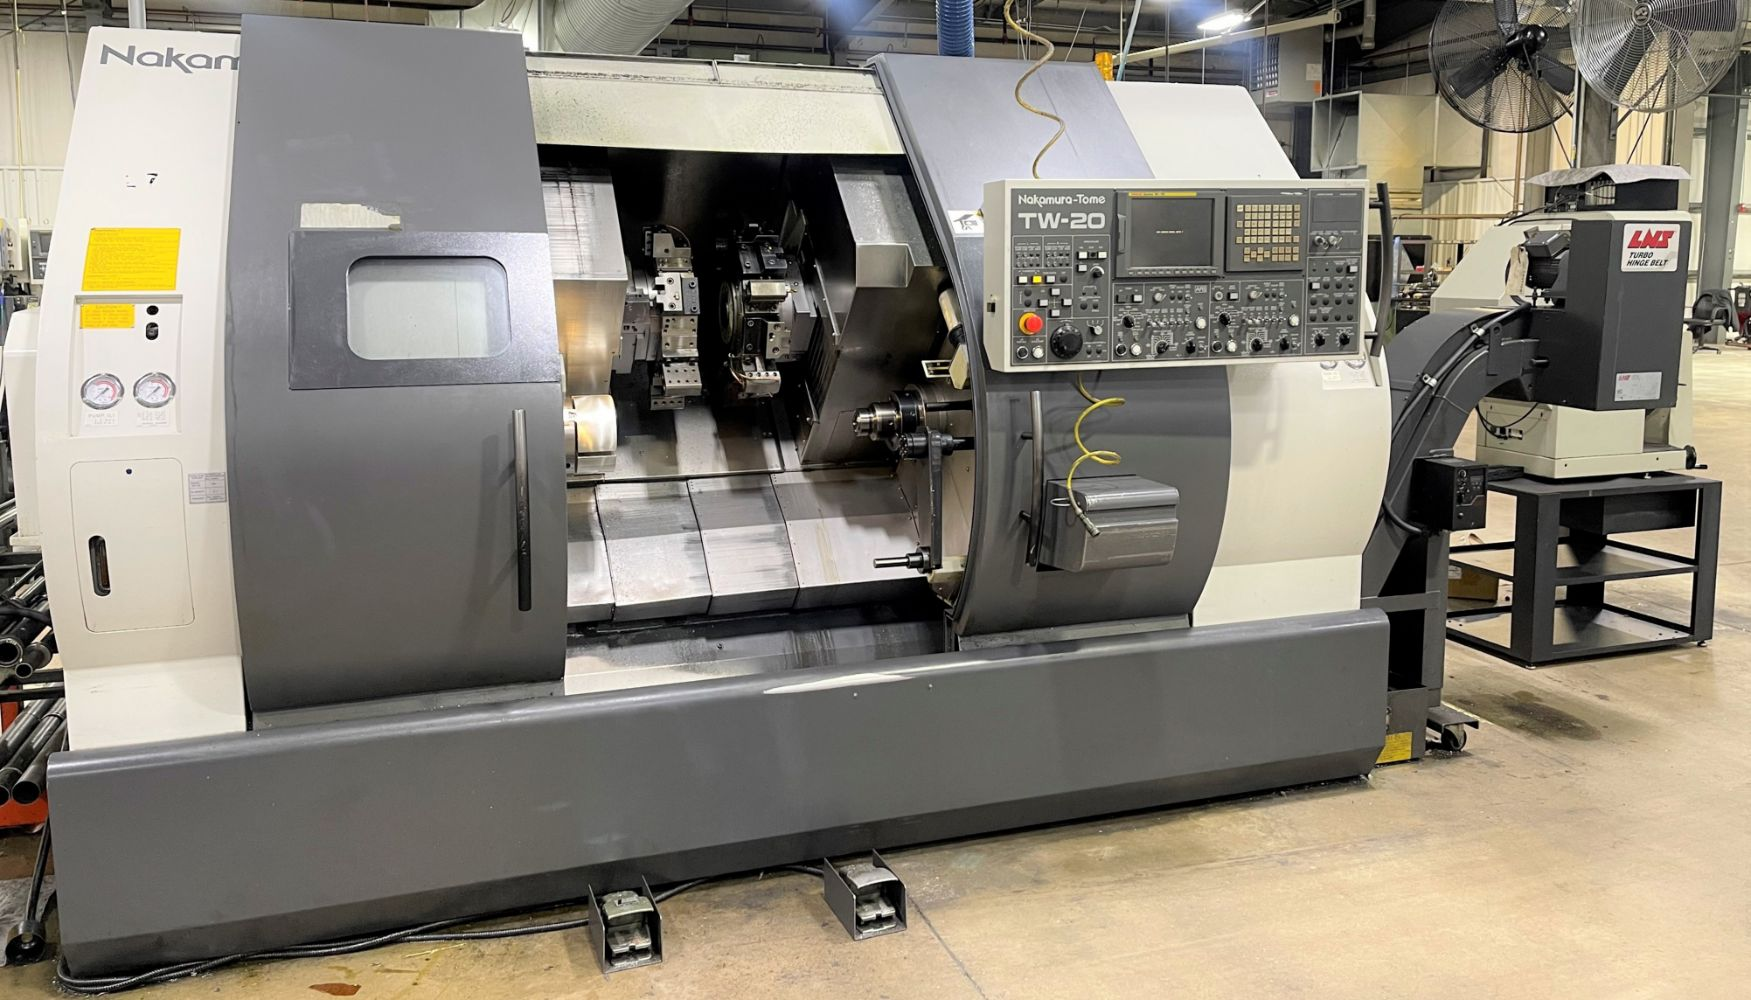 Excellent Condition CNC Machine Tools Surplus to Ongoing Operations